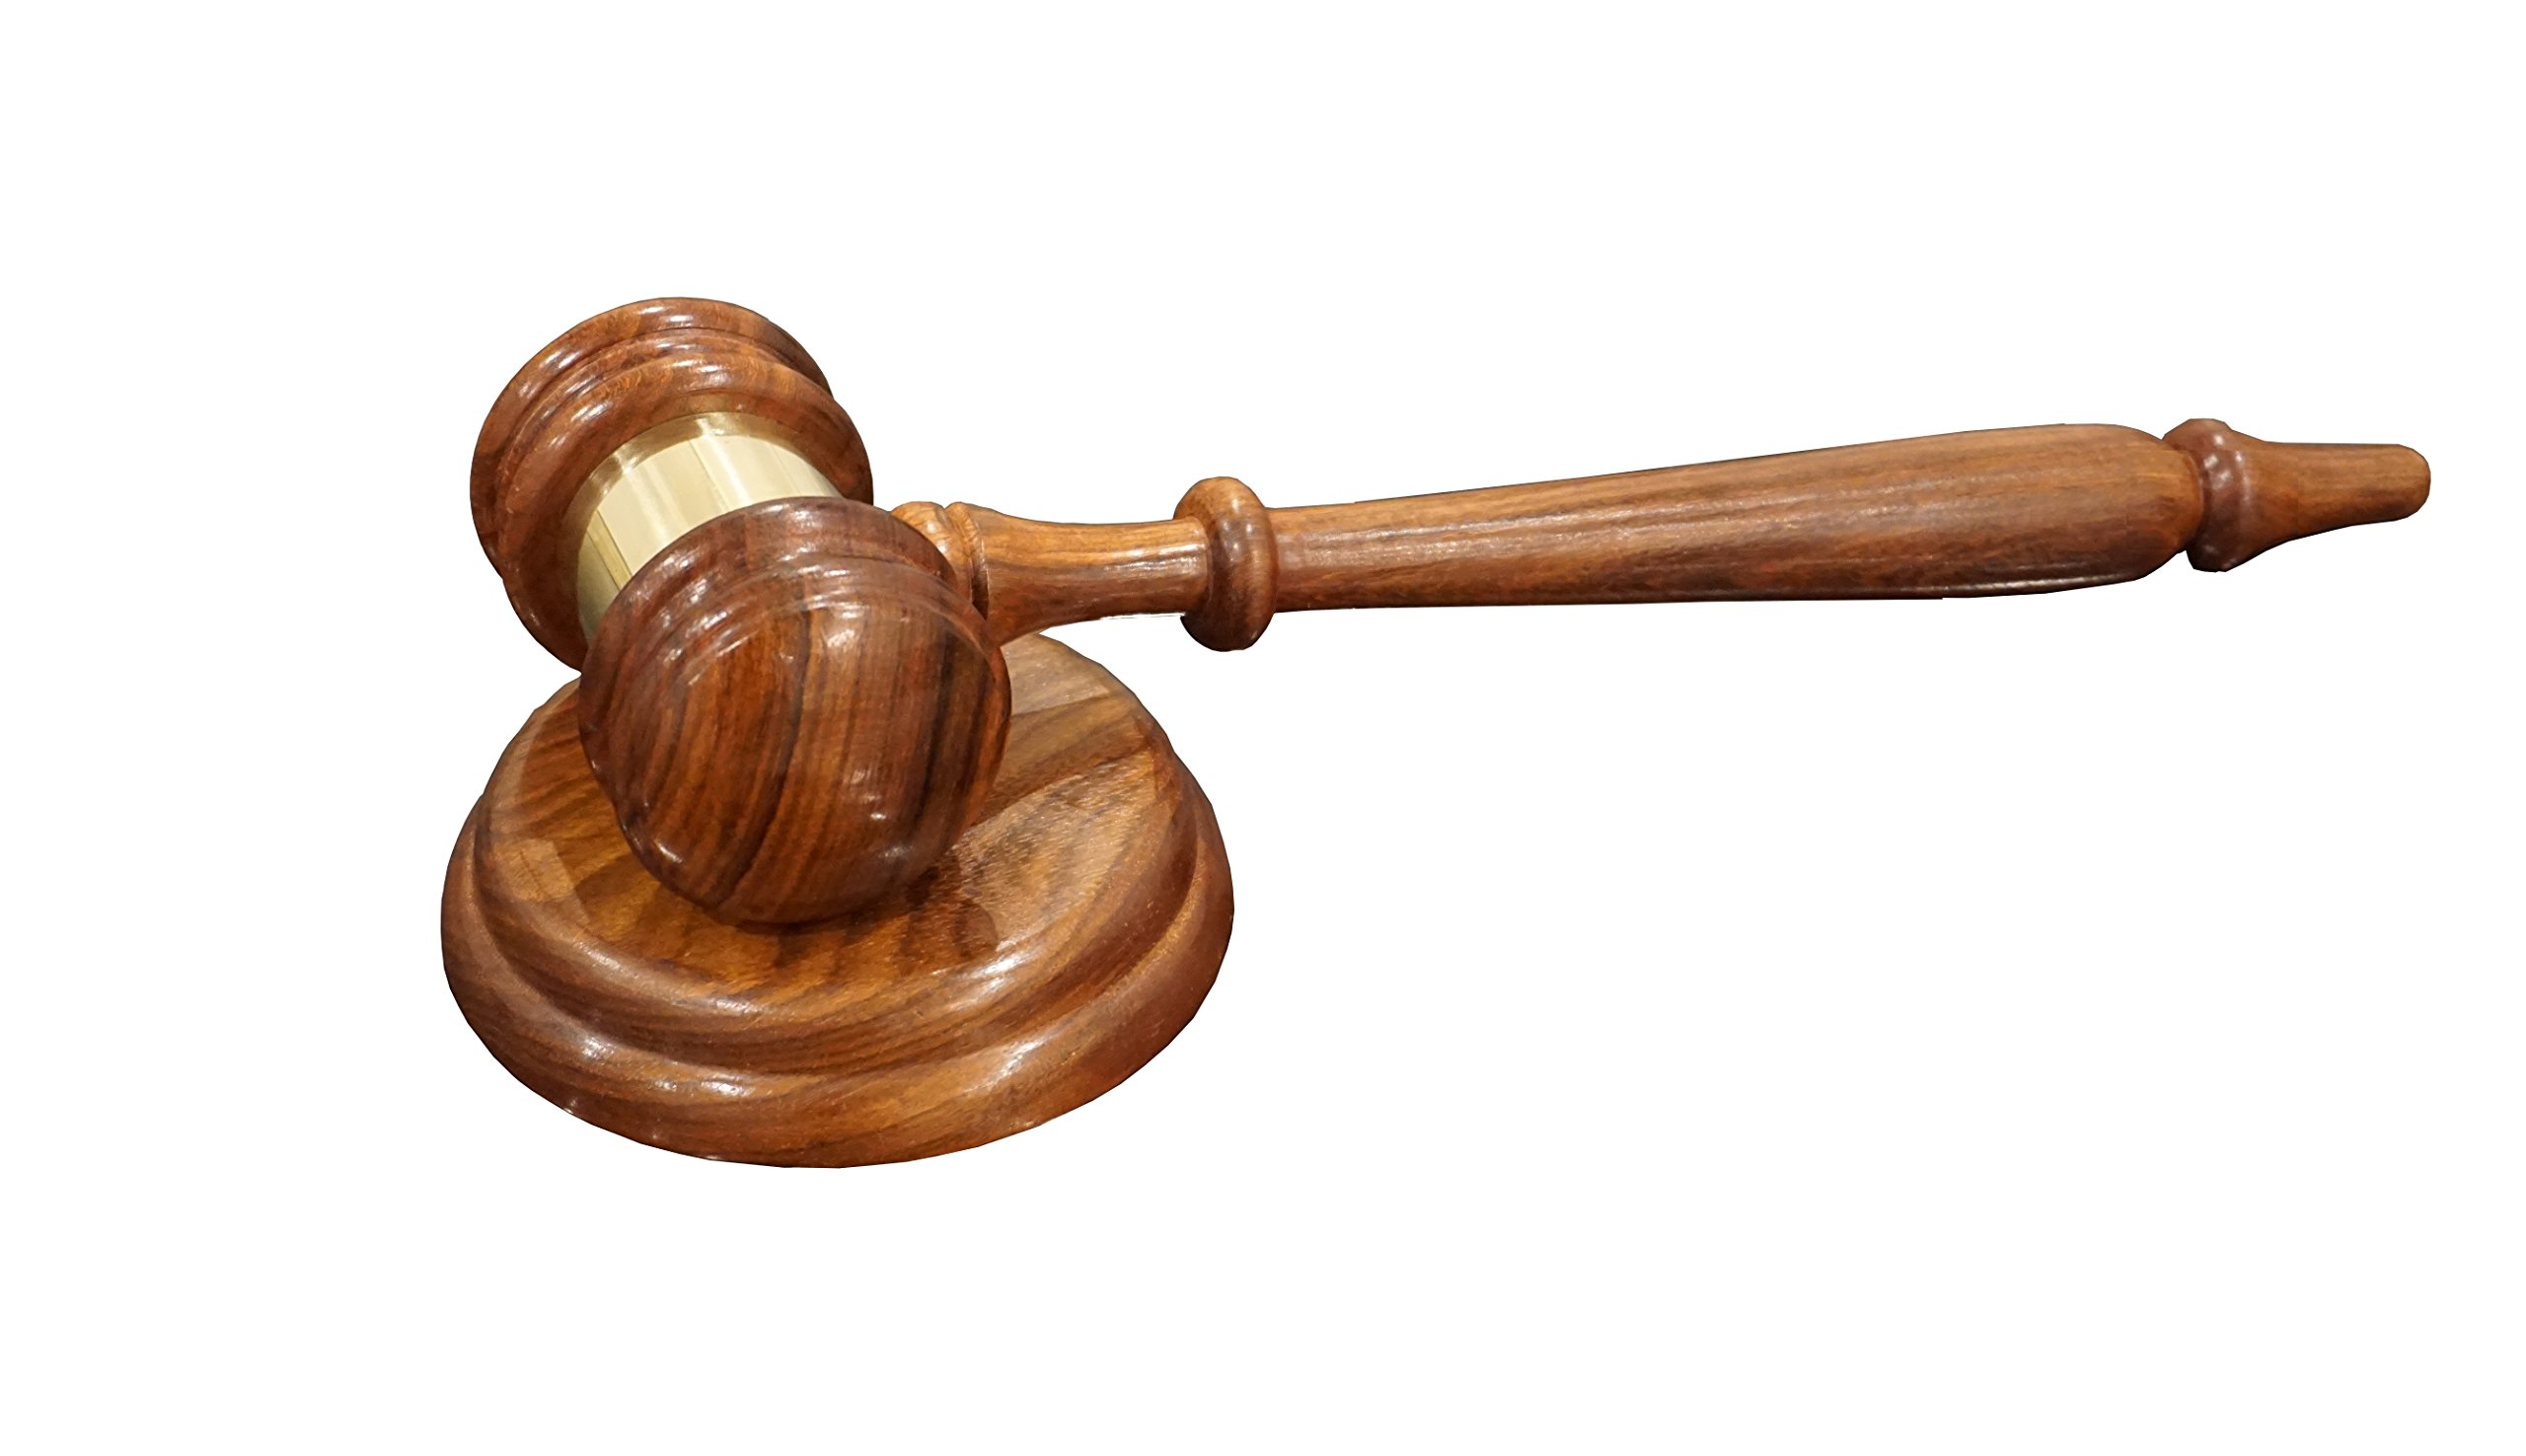 Premium Quality - Justice Gavels Wood Gavel and Sound Block for Judges, Lawyers, Auctions, and More.